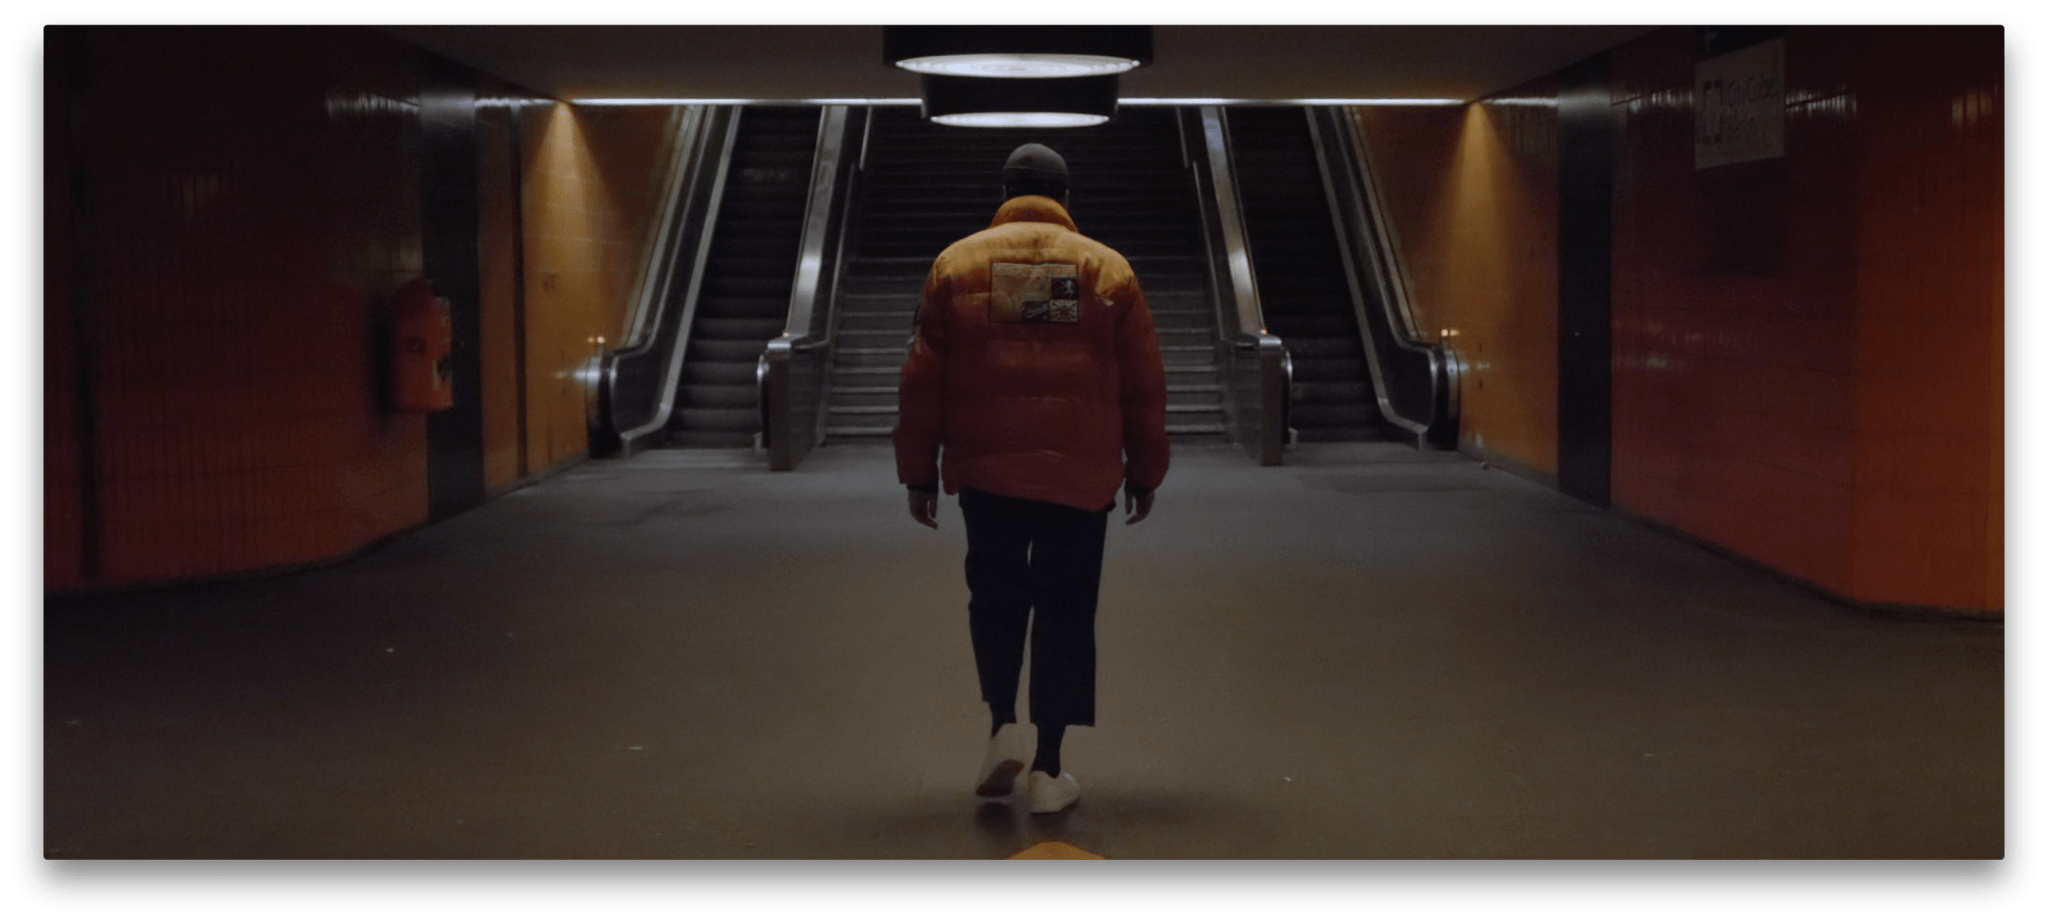 music video recommendation-stayed-by- noah slee - New Zealand - Germany - indie music - new music - indie pop - music blog - indie blog - wolf in a suit - wolfinasuit - wolf in a suit blog - wolf in a suit music blog